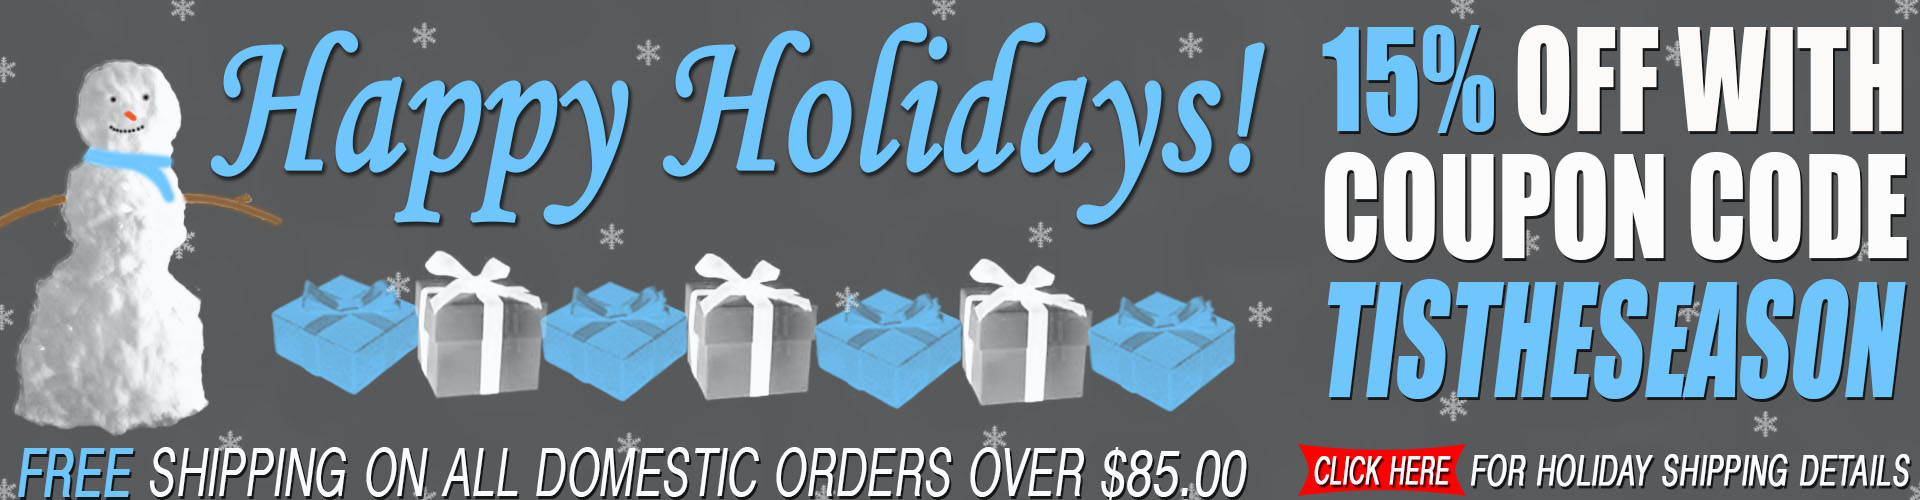 "Coupon Code ""TISTHESEASON"" from Myosource Kinetic Bands. Save 15% on every item in your order. Free domestic shipping over $85.00. Holiday Shipping Details and Deadlines Link."